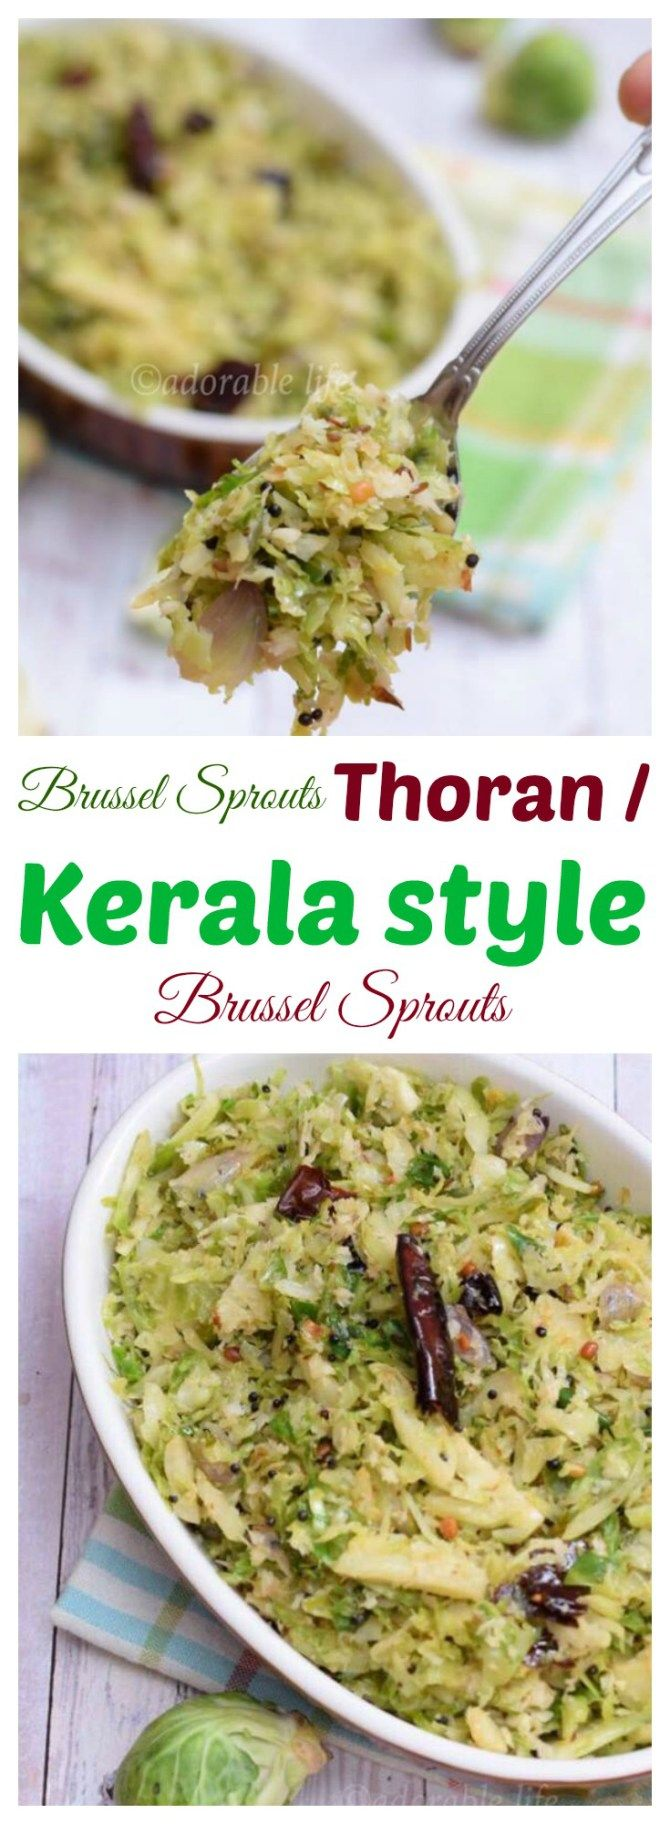 brussel sprouts thoran / Kerala Style stir fried Brussel Sprouts with Crushed Coconut